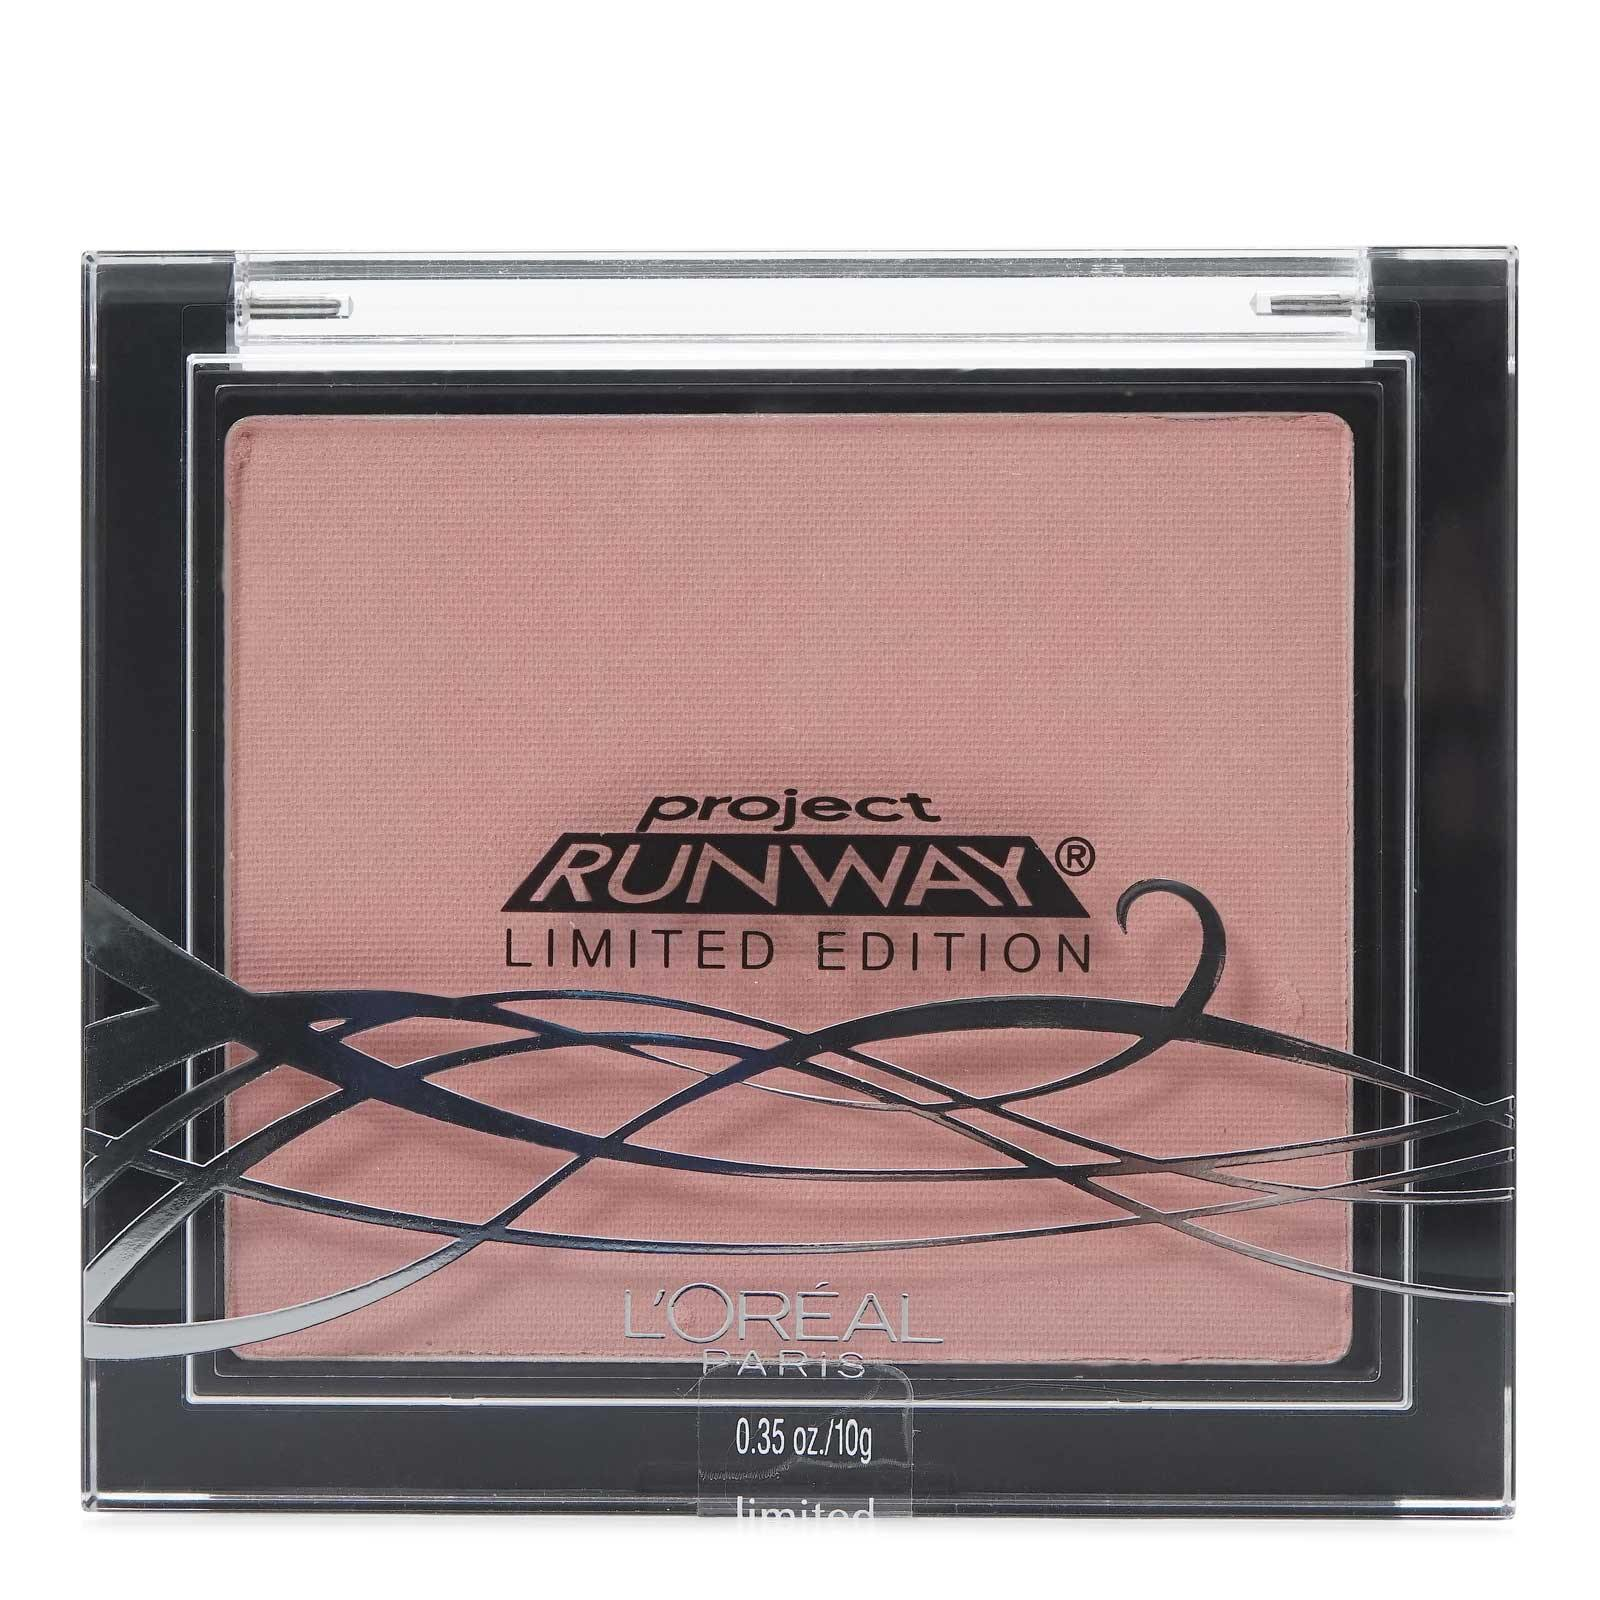 LOREAL WEAR INFINITE PROJECT RUNWAY BLUSH- QUEENS BLUSH (24/cs)